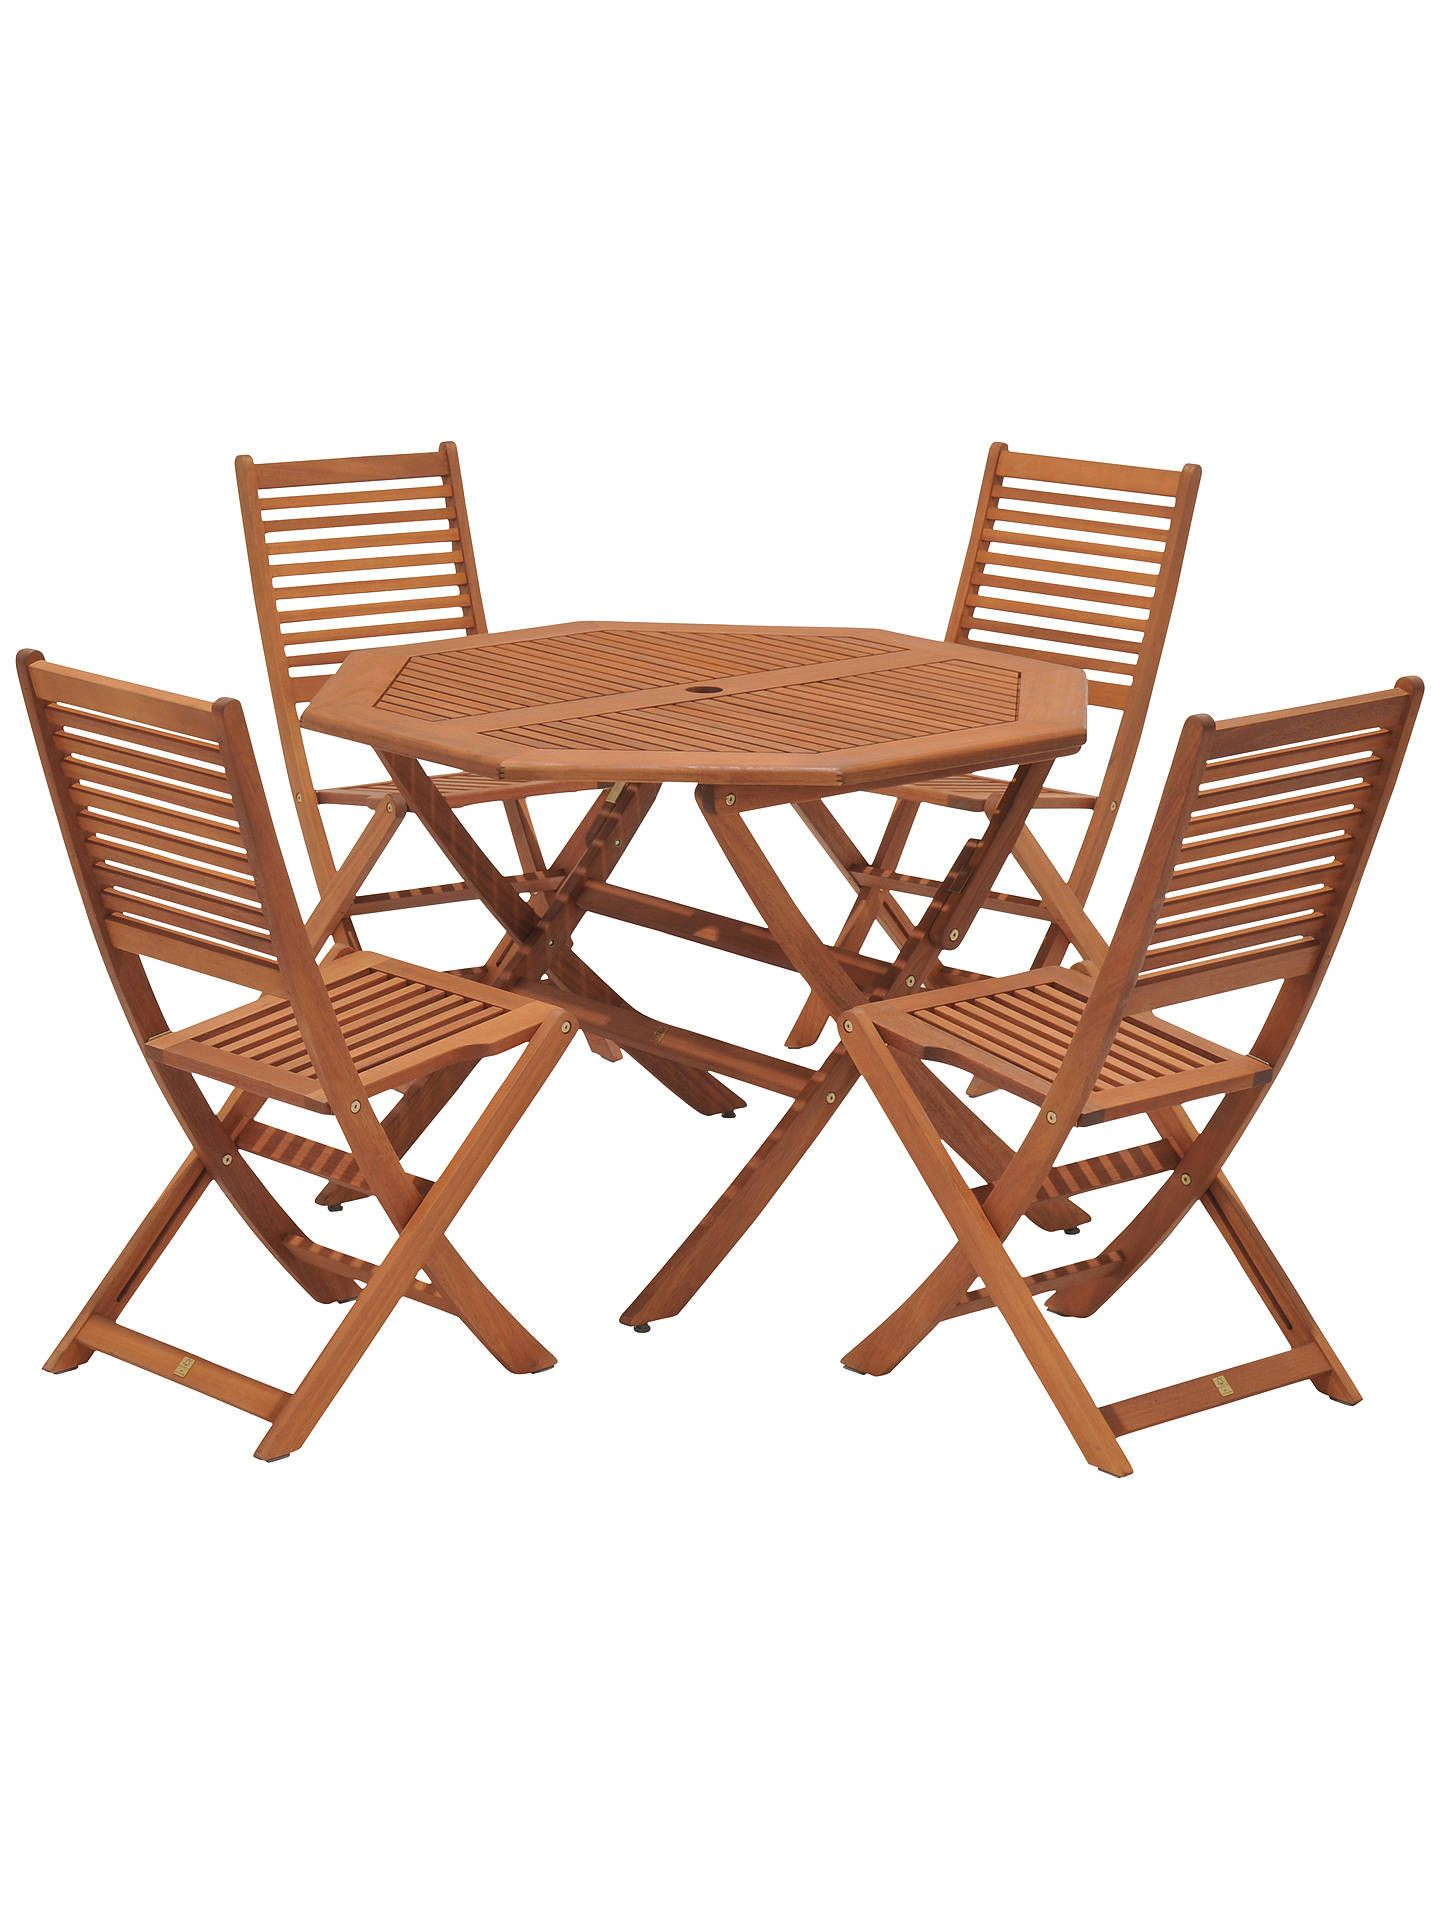 John Lewis & Partners Venice 10 Seater Garden Table & Chairs Set